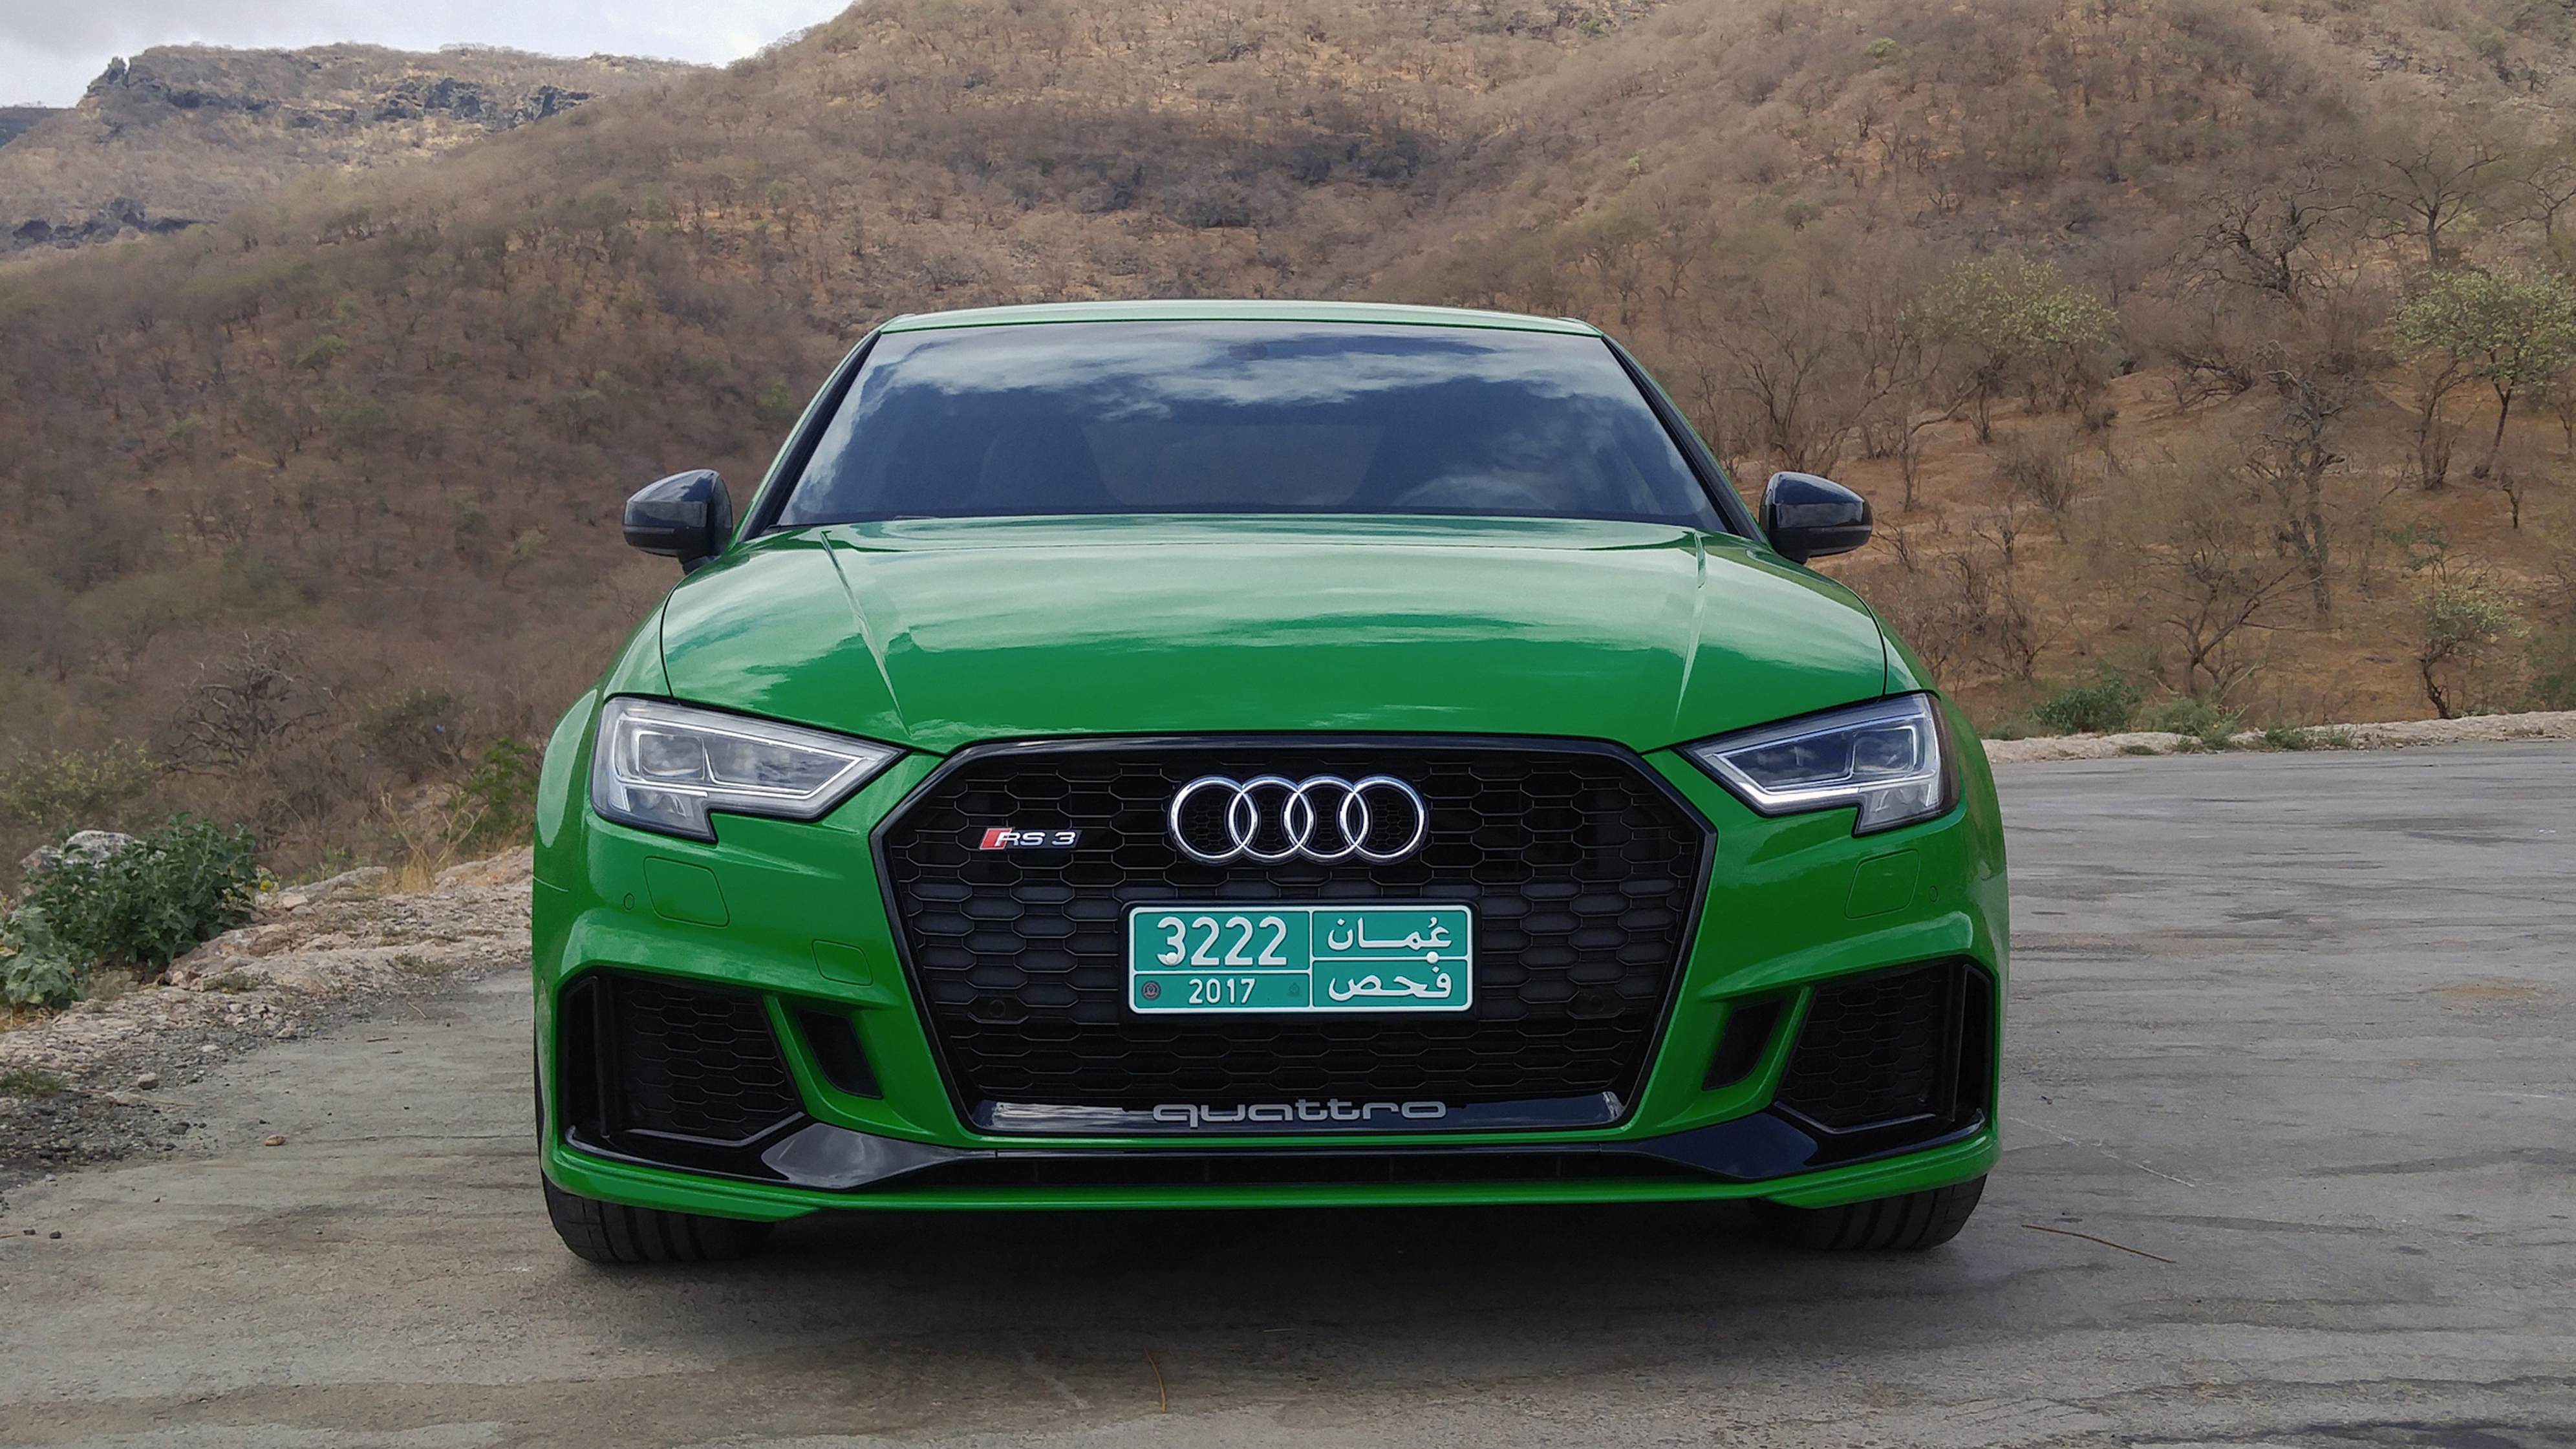 2018 Audi Rs 3 Review Front Profile